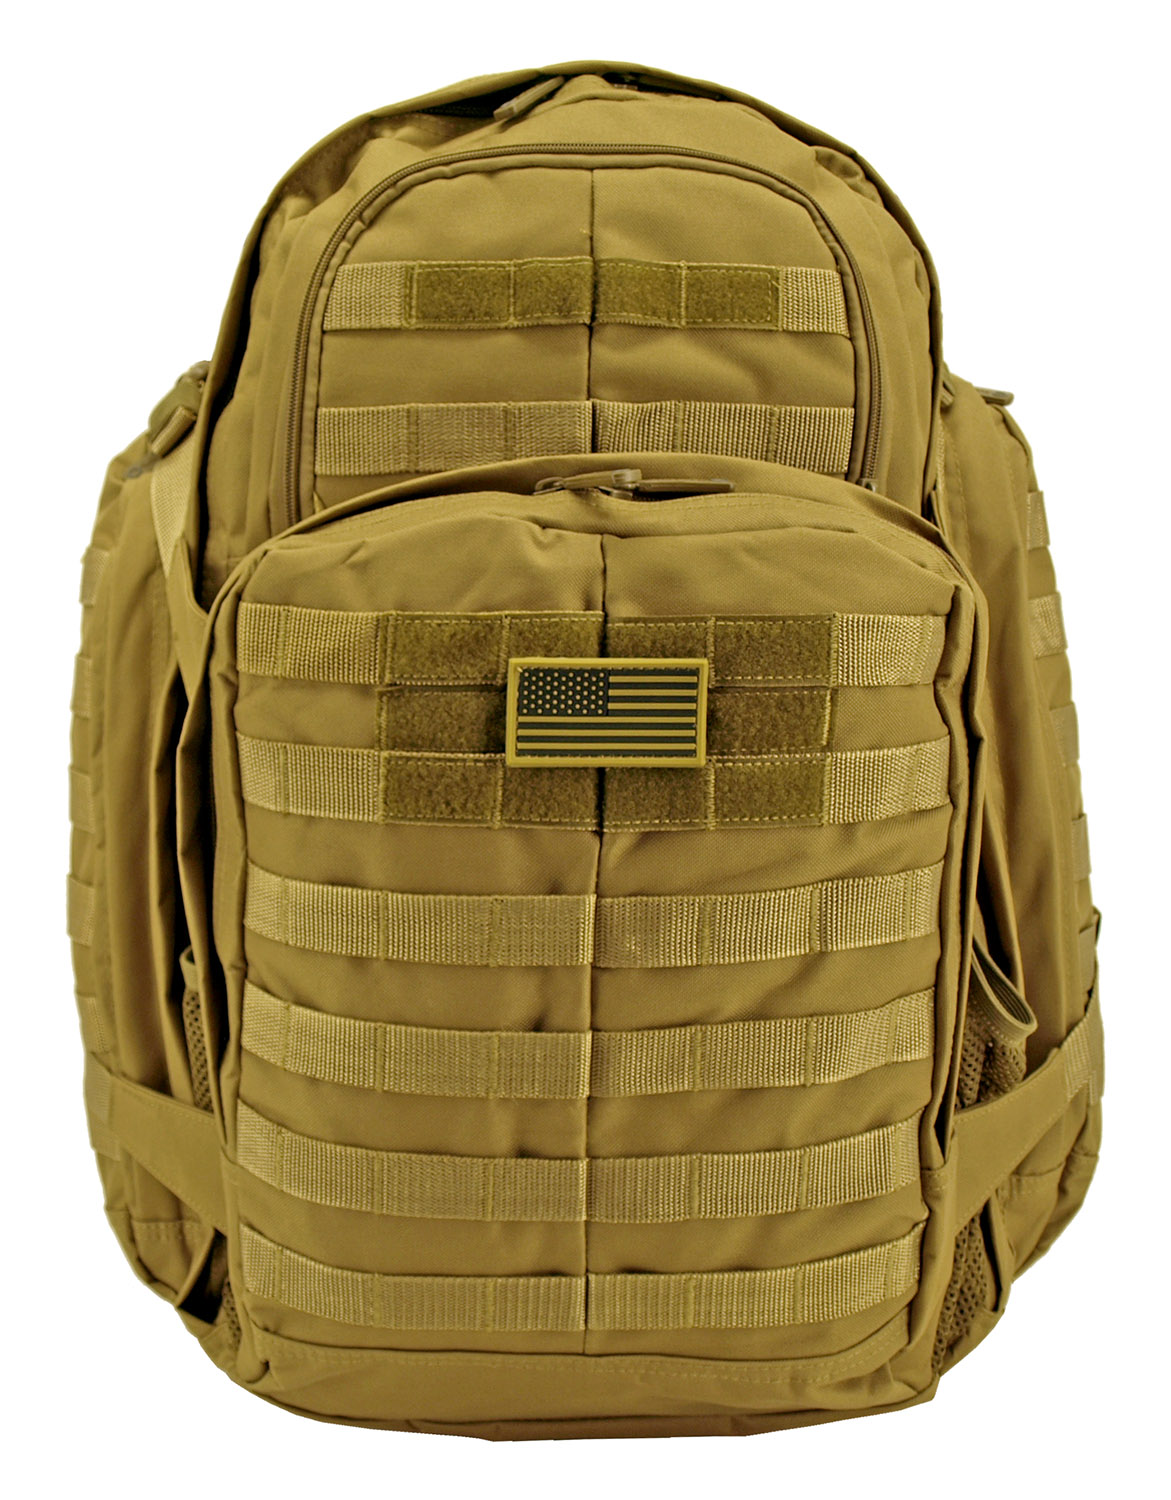 Expandable '73 Backpack - Desert Tan